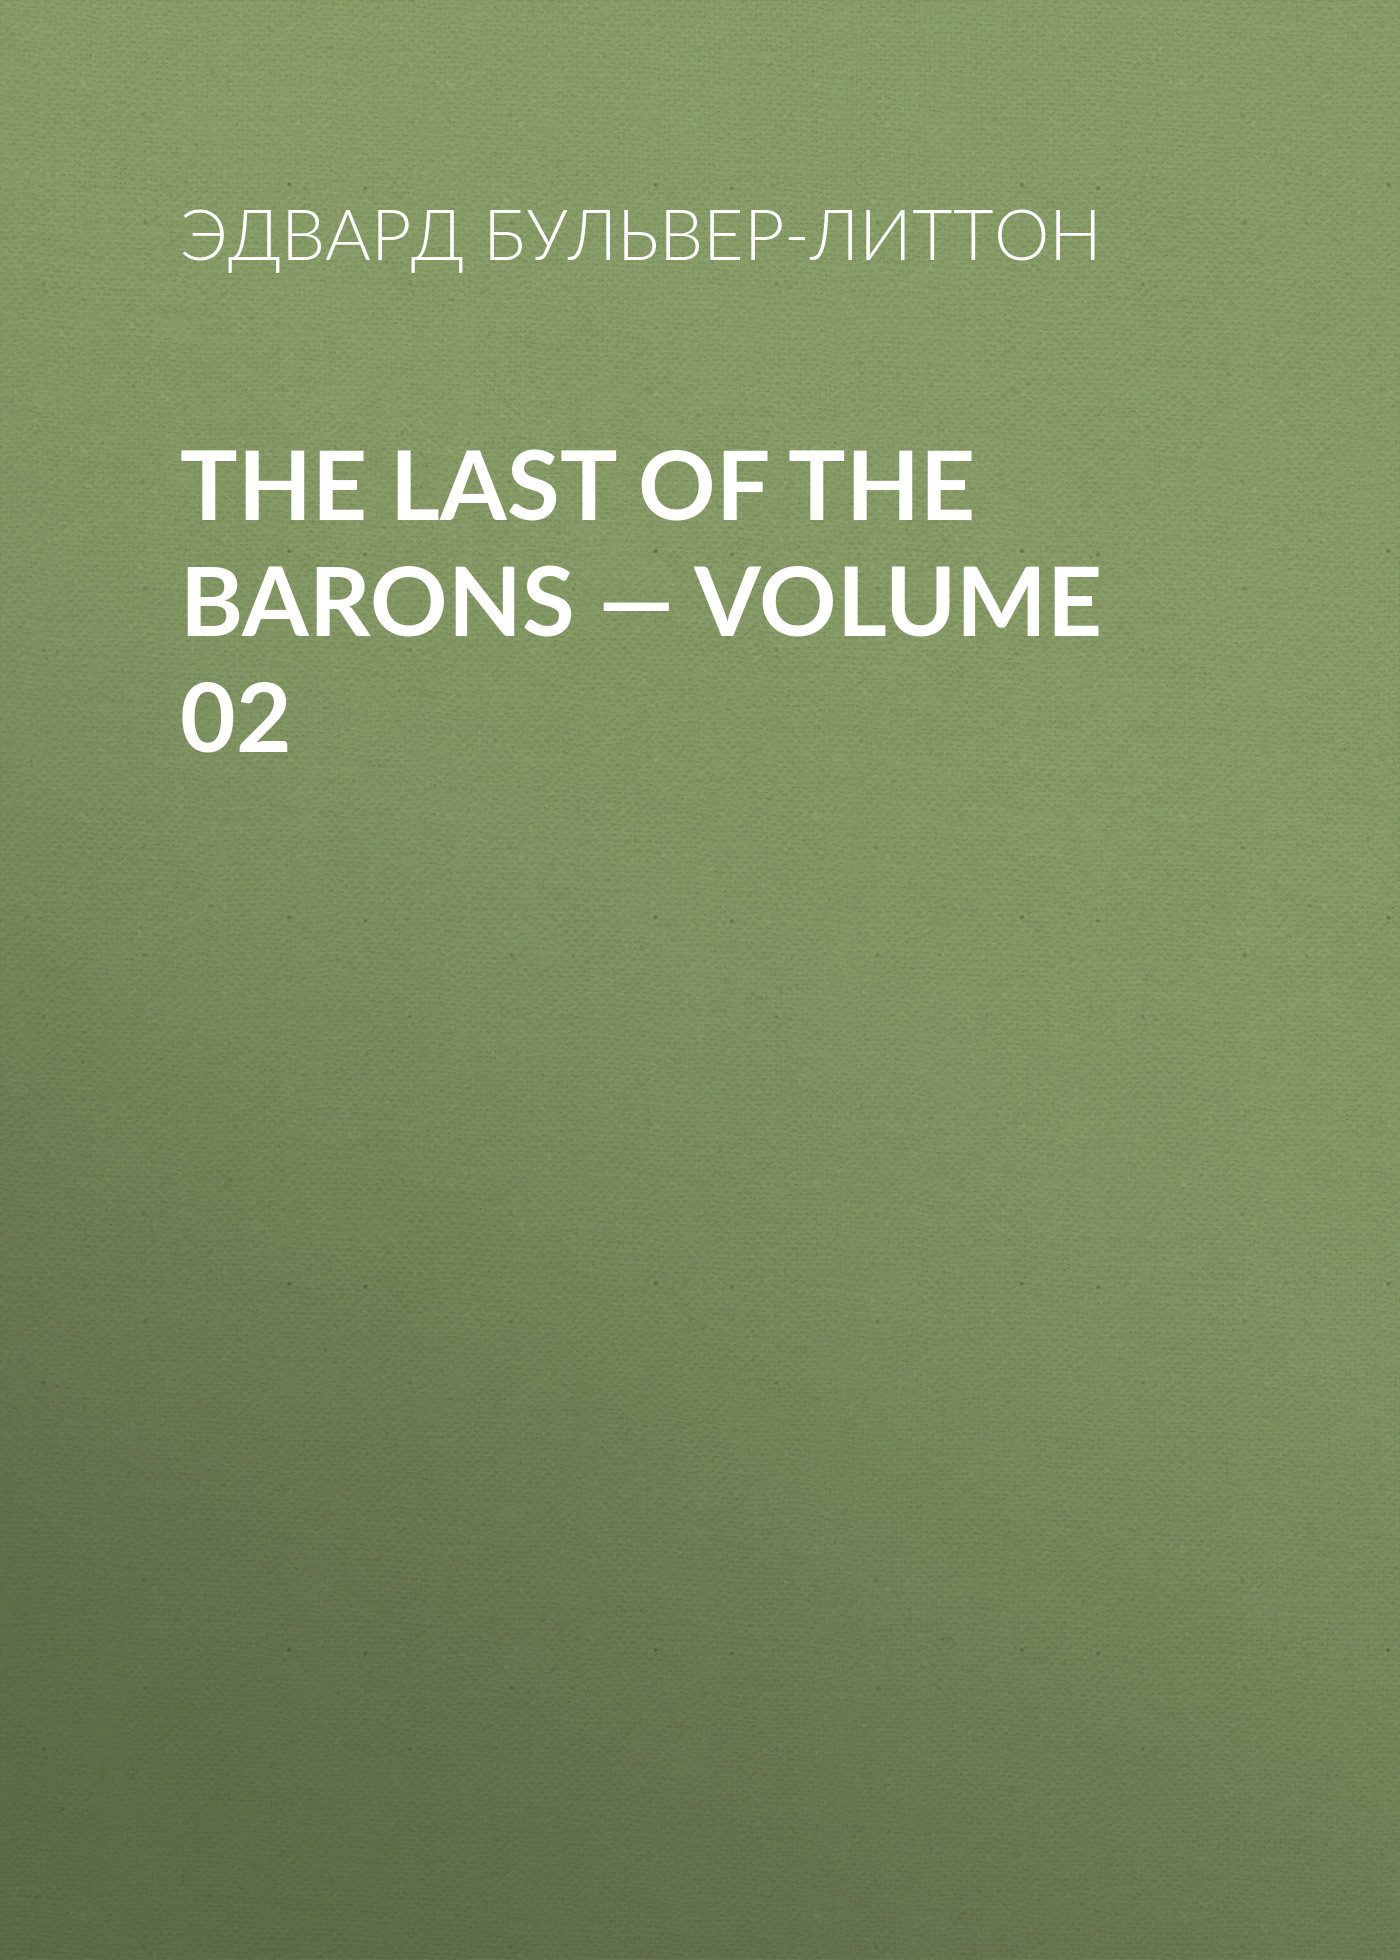 Эдвард Бульвер-Литтон The Last of the Barons — Volume 02 fayrene preston the barons of texas tess